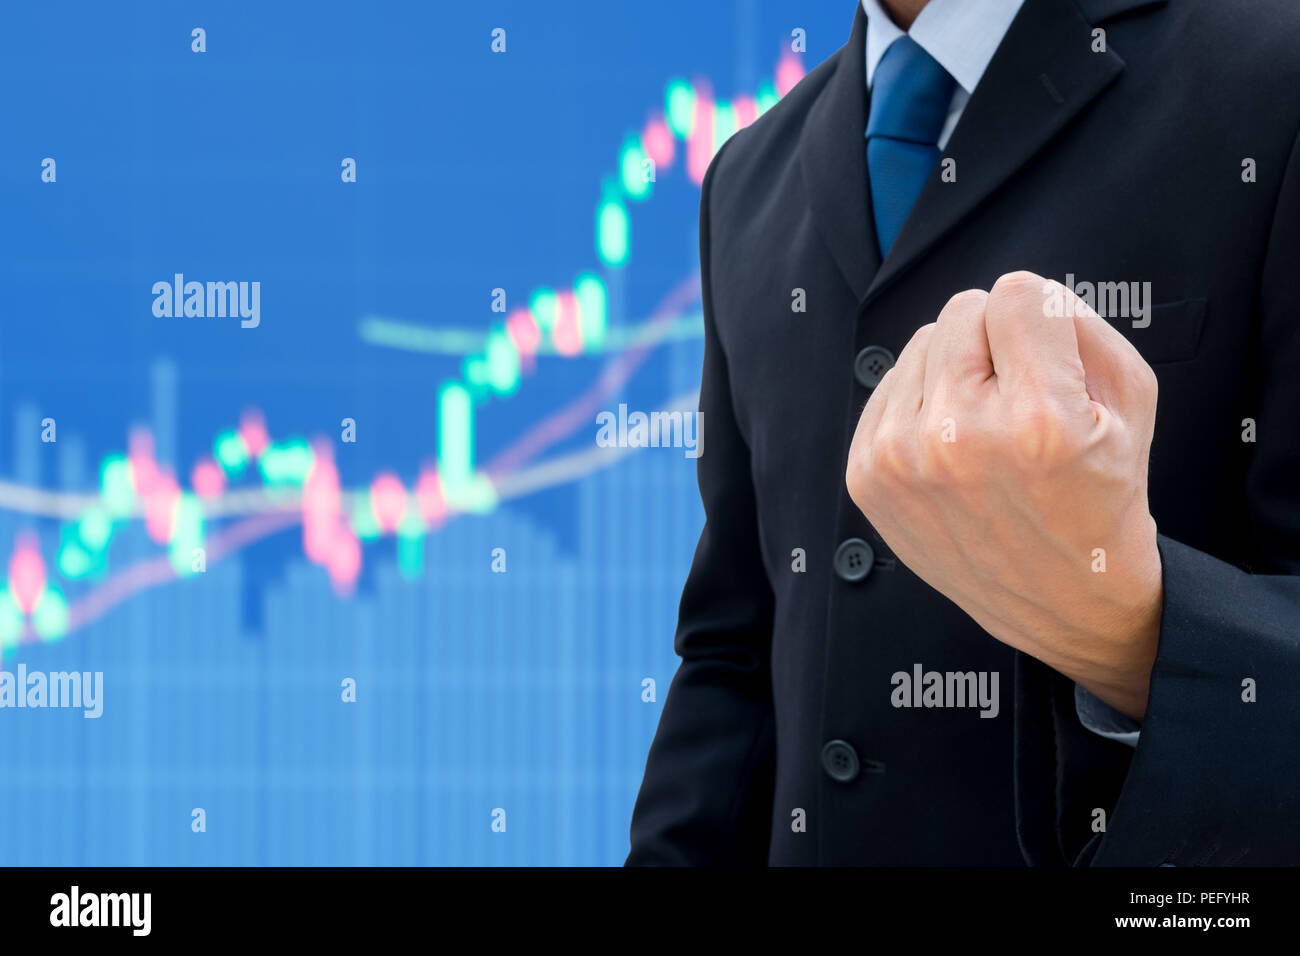 Businessman in dark gray suit raising his fist of success and victory in global business. Increasing up business and stock market graph in background - Stock Image